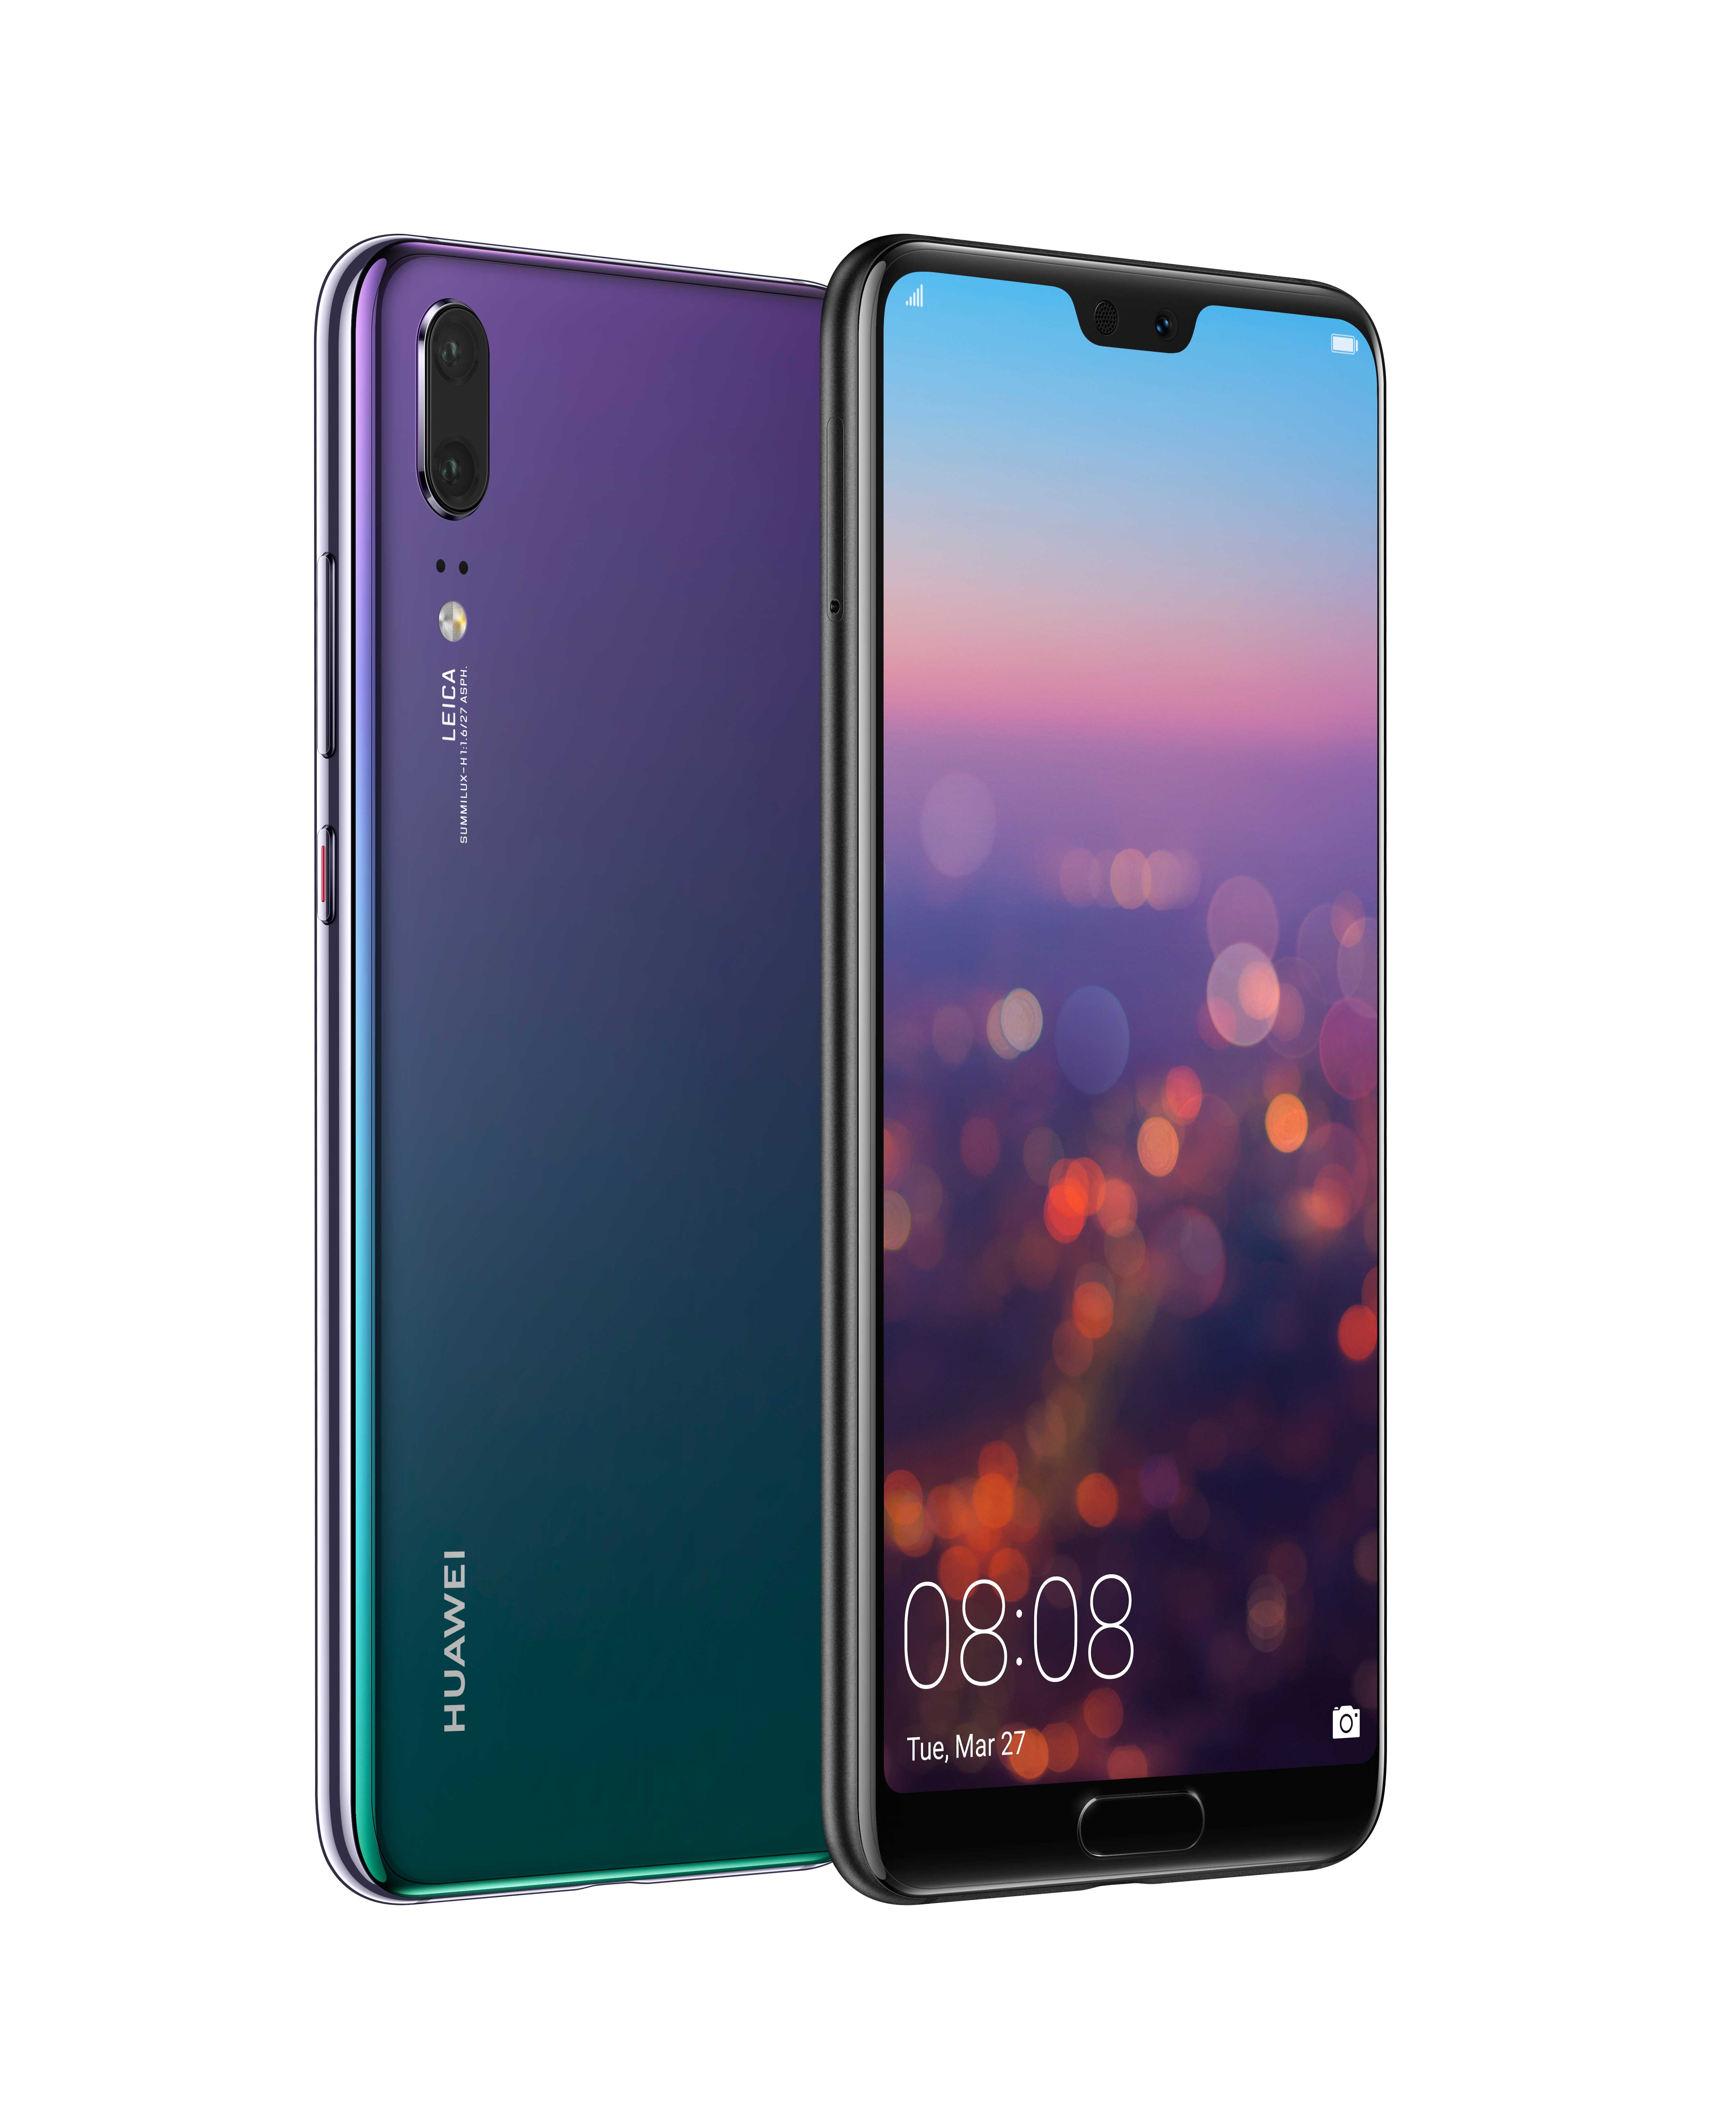 Here S How You Can Be The First In Malaysia To Own The Huawei P20 Pro Twilight News Rojak Daily